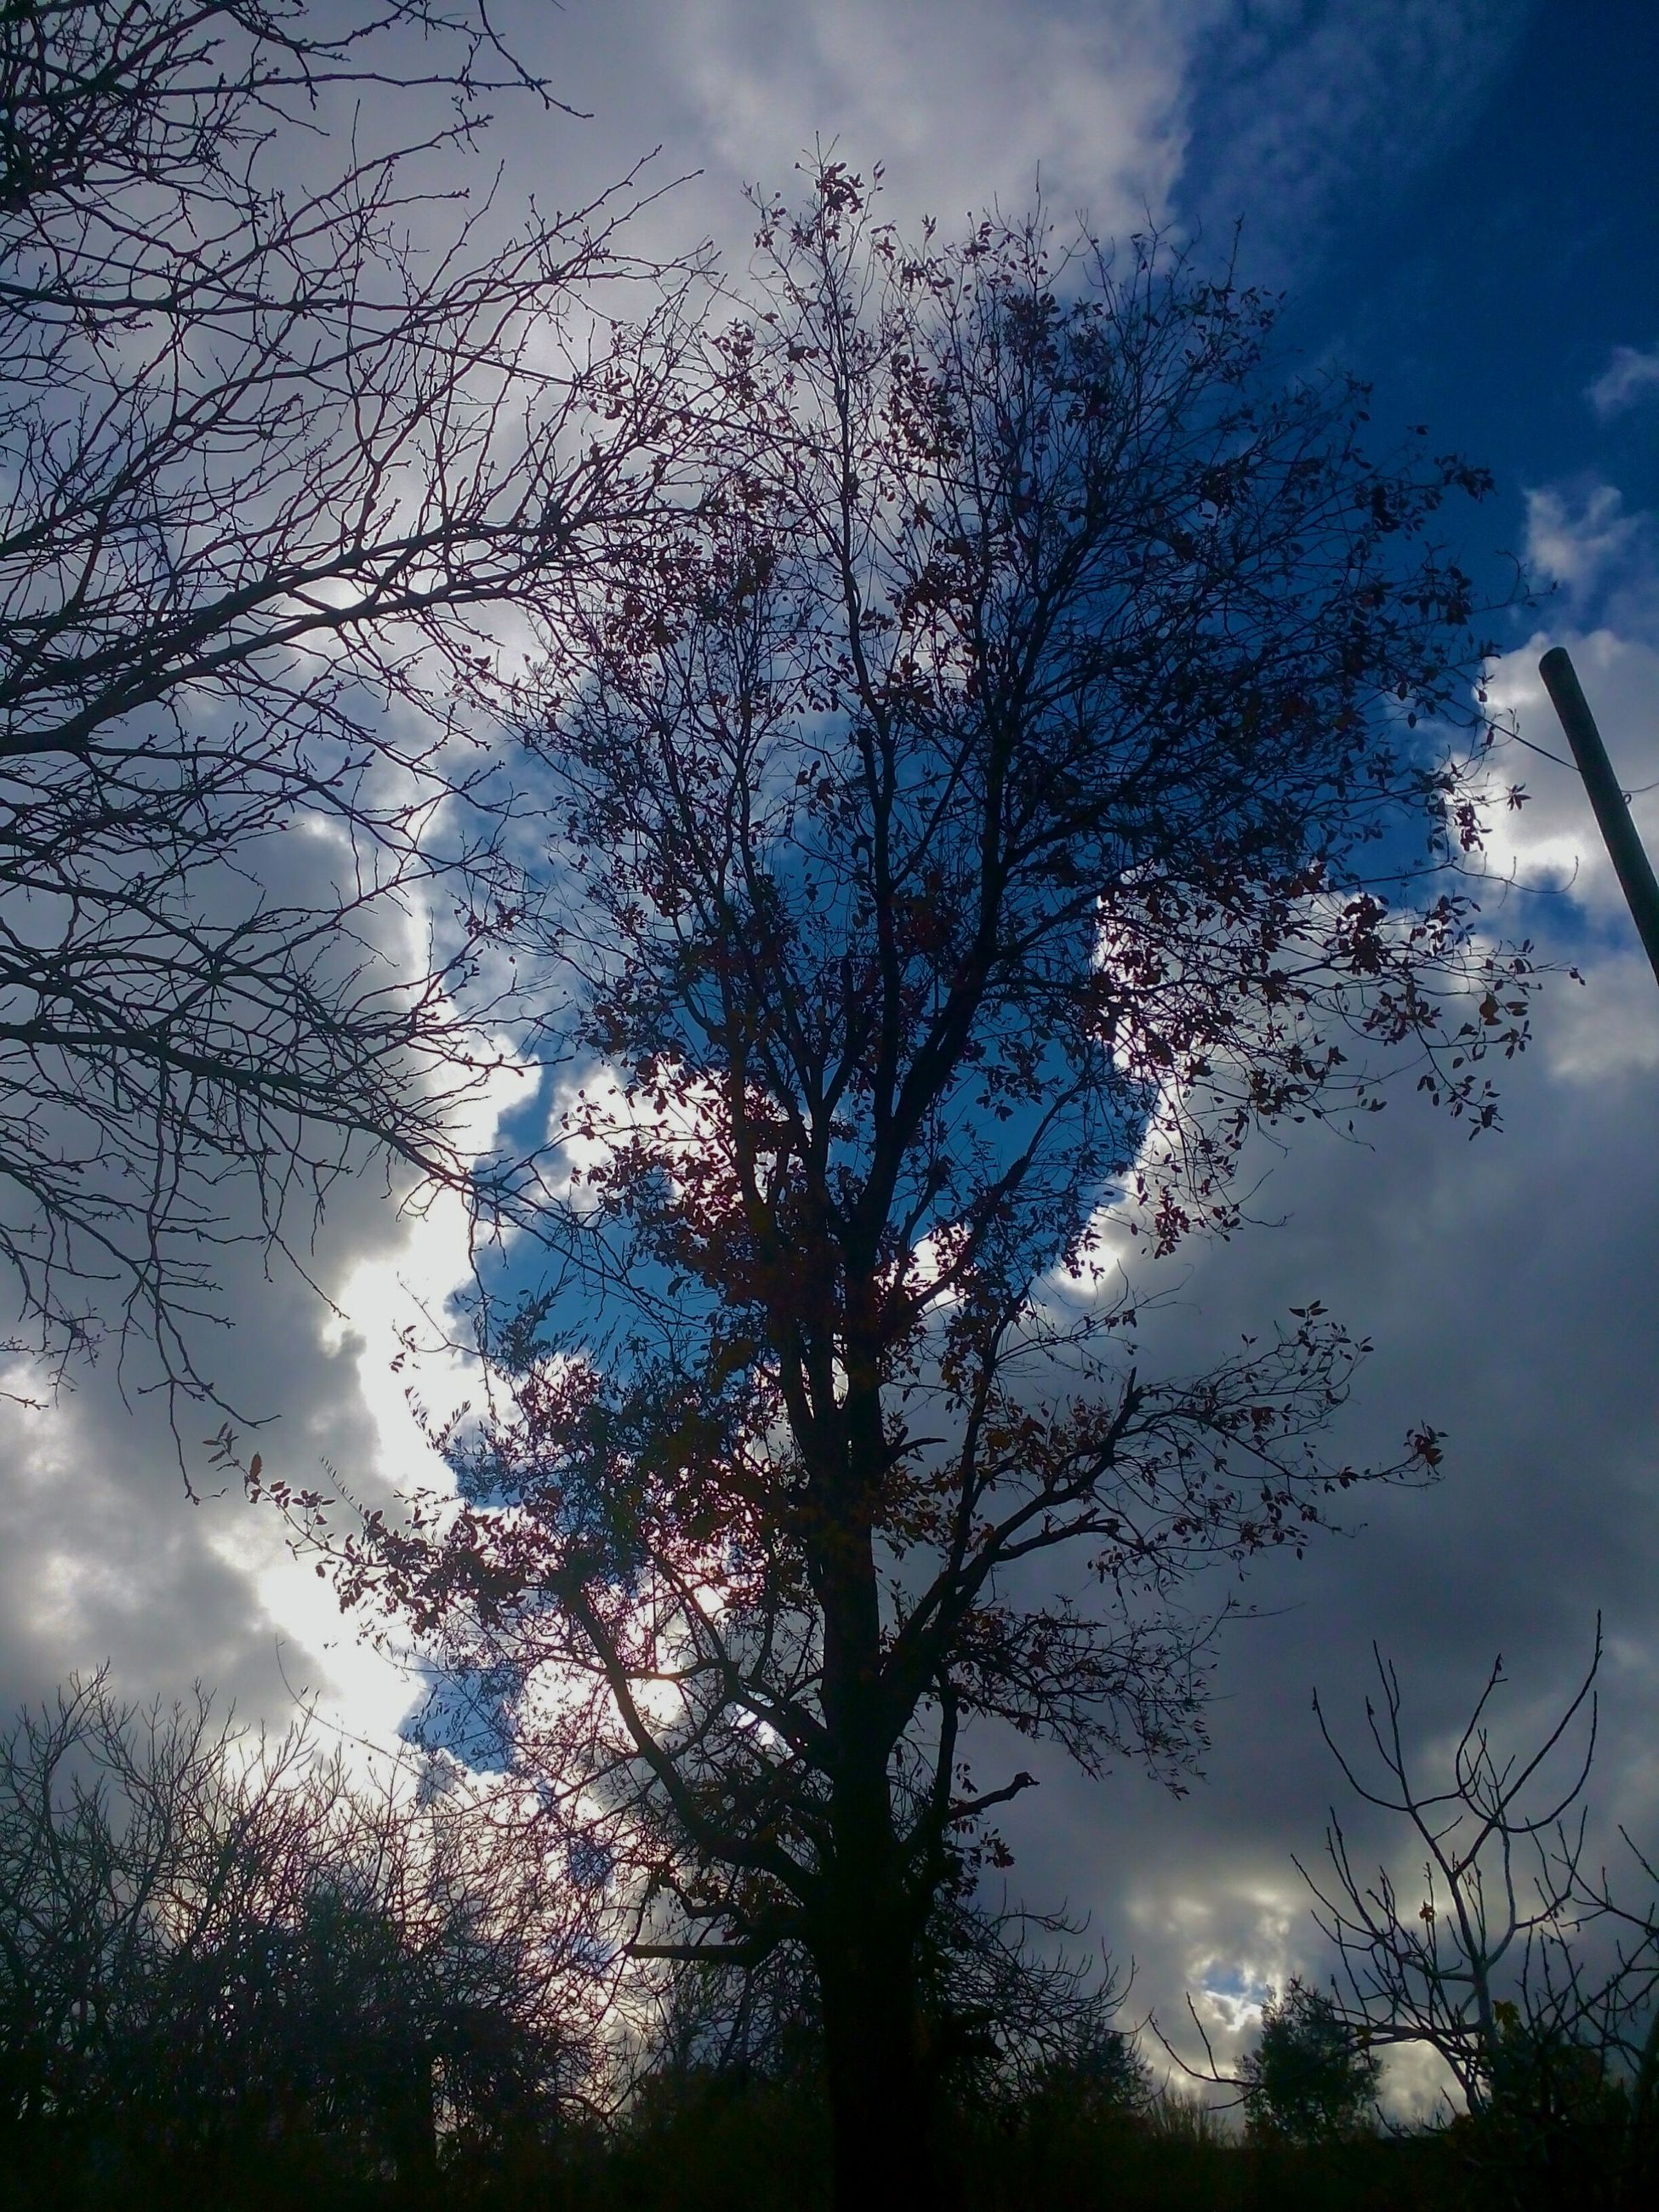 sky, cloud - sky, tree, nature, sunset, no people, close-up, outdoors, silhouette, low angle view, branch, beauty in nature, day